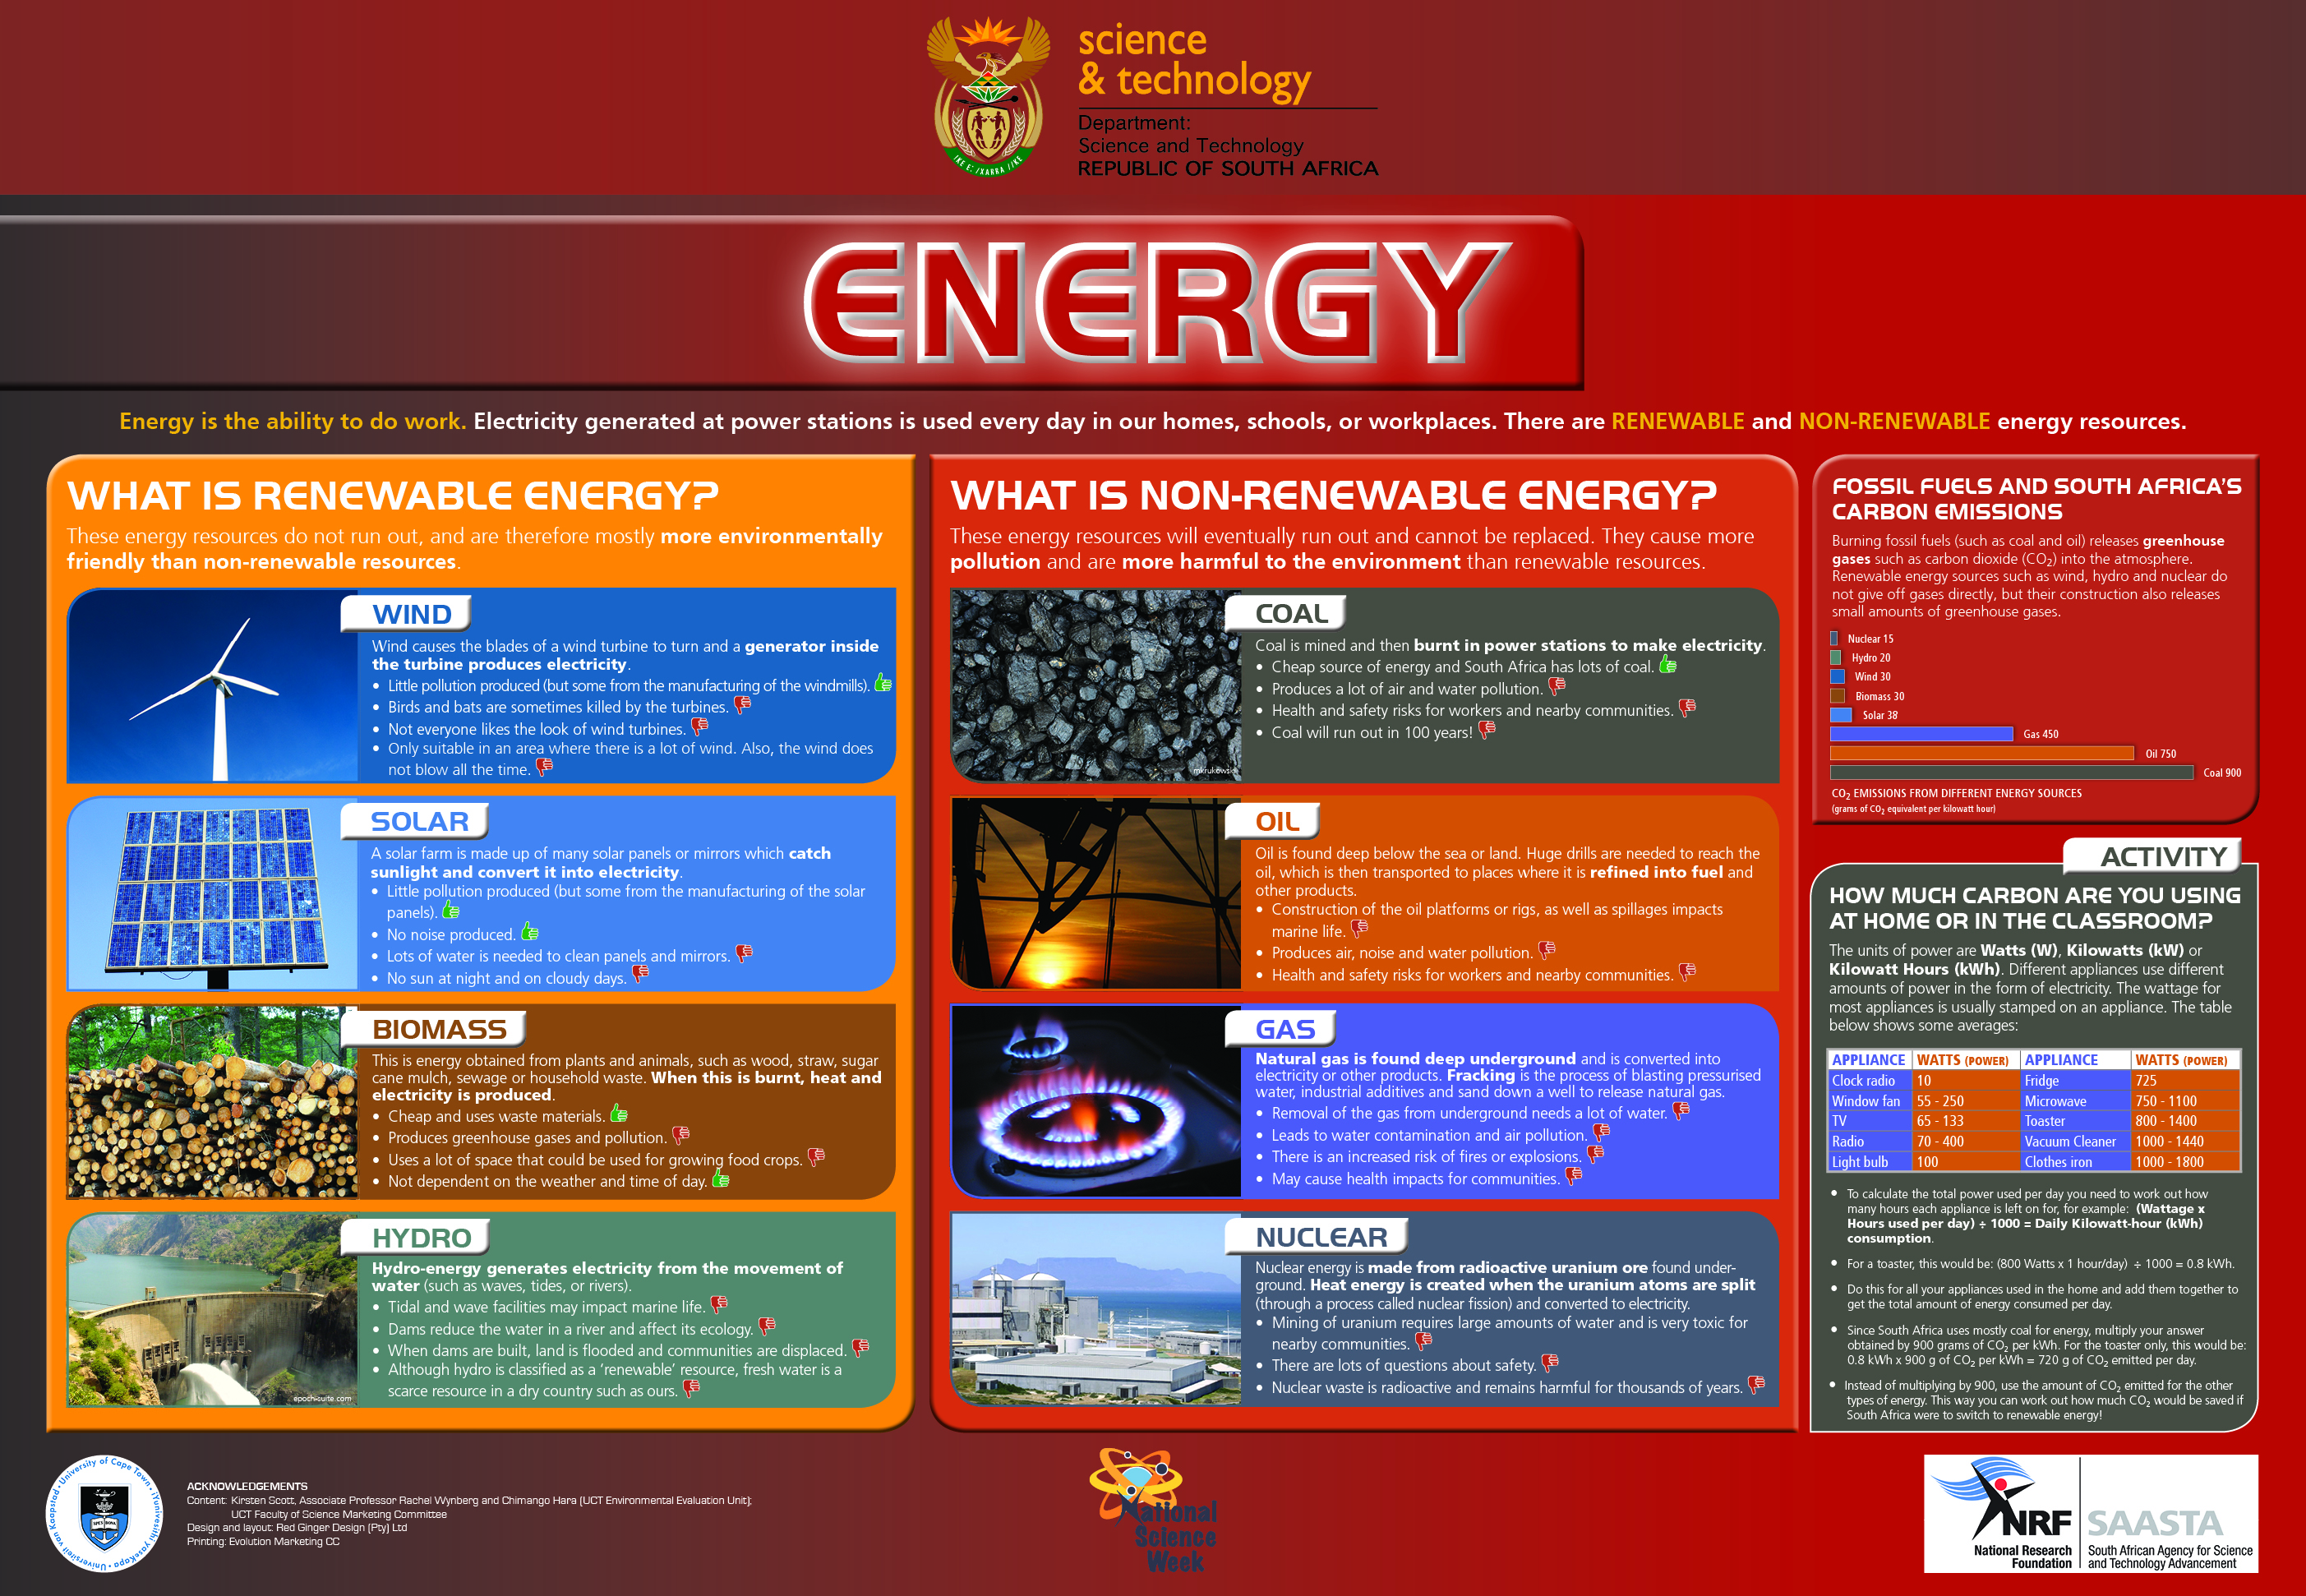 Energy: Renewable and Non-renewable